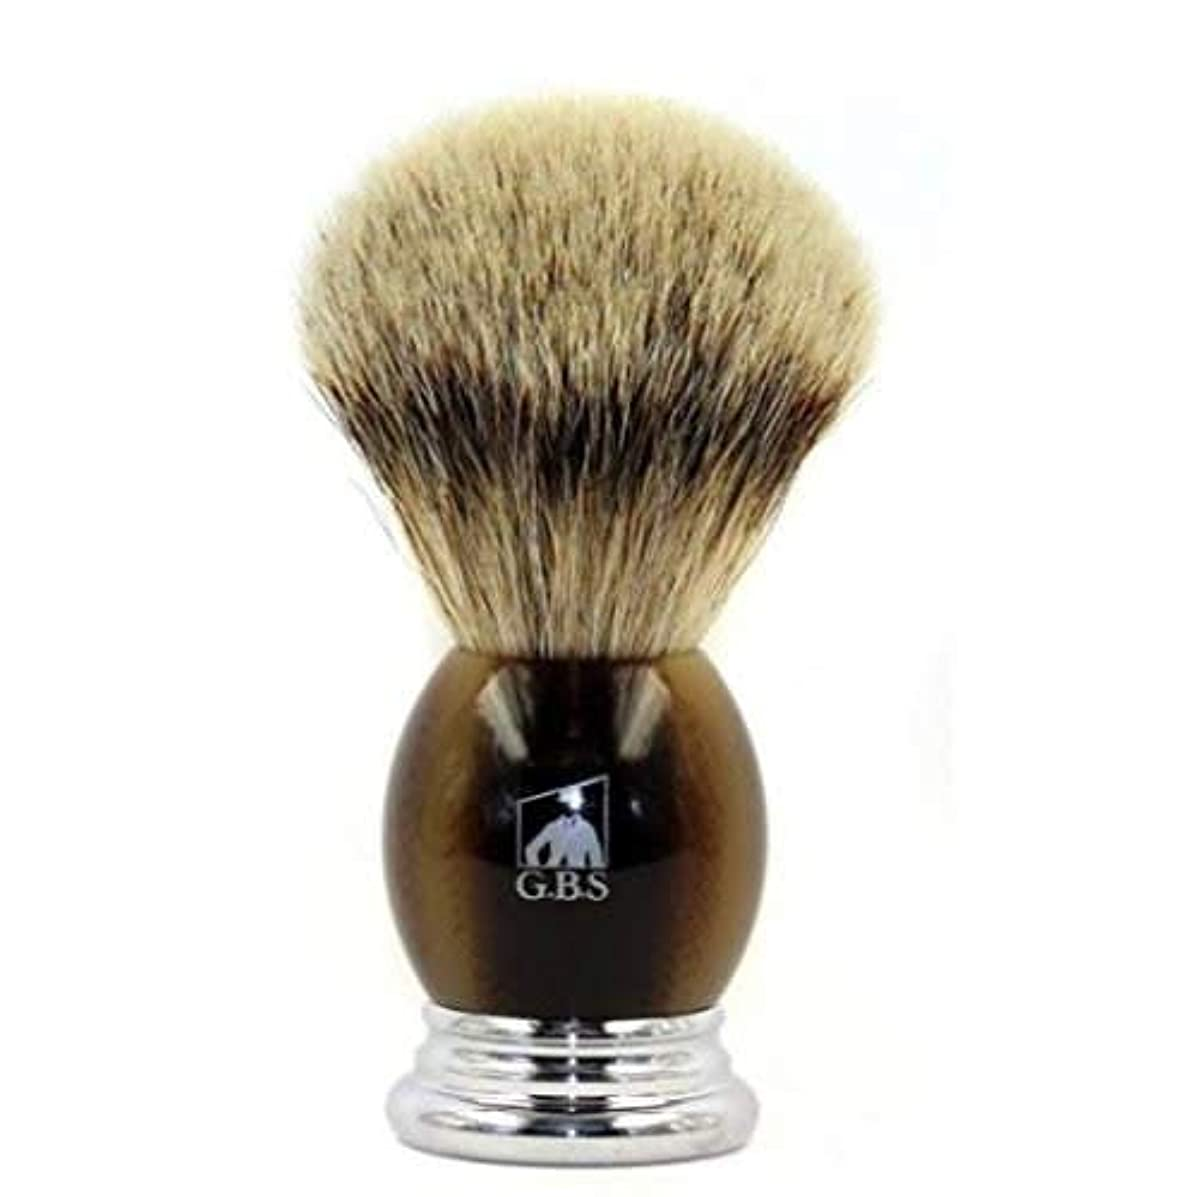 GBS 100% Silvertip Badger Bristle Shaving Brush Horn Color with Free Stand